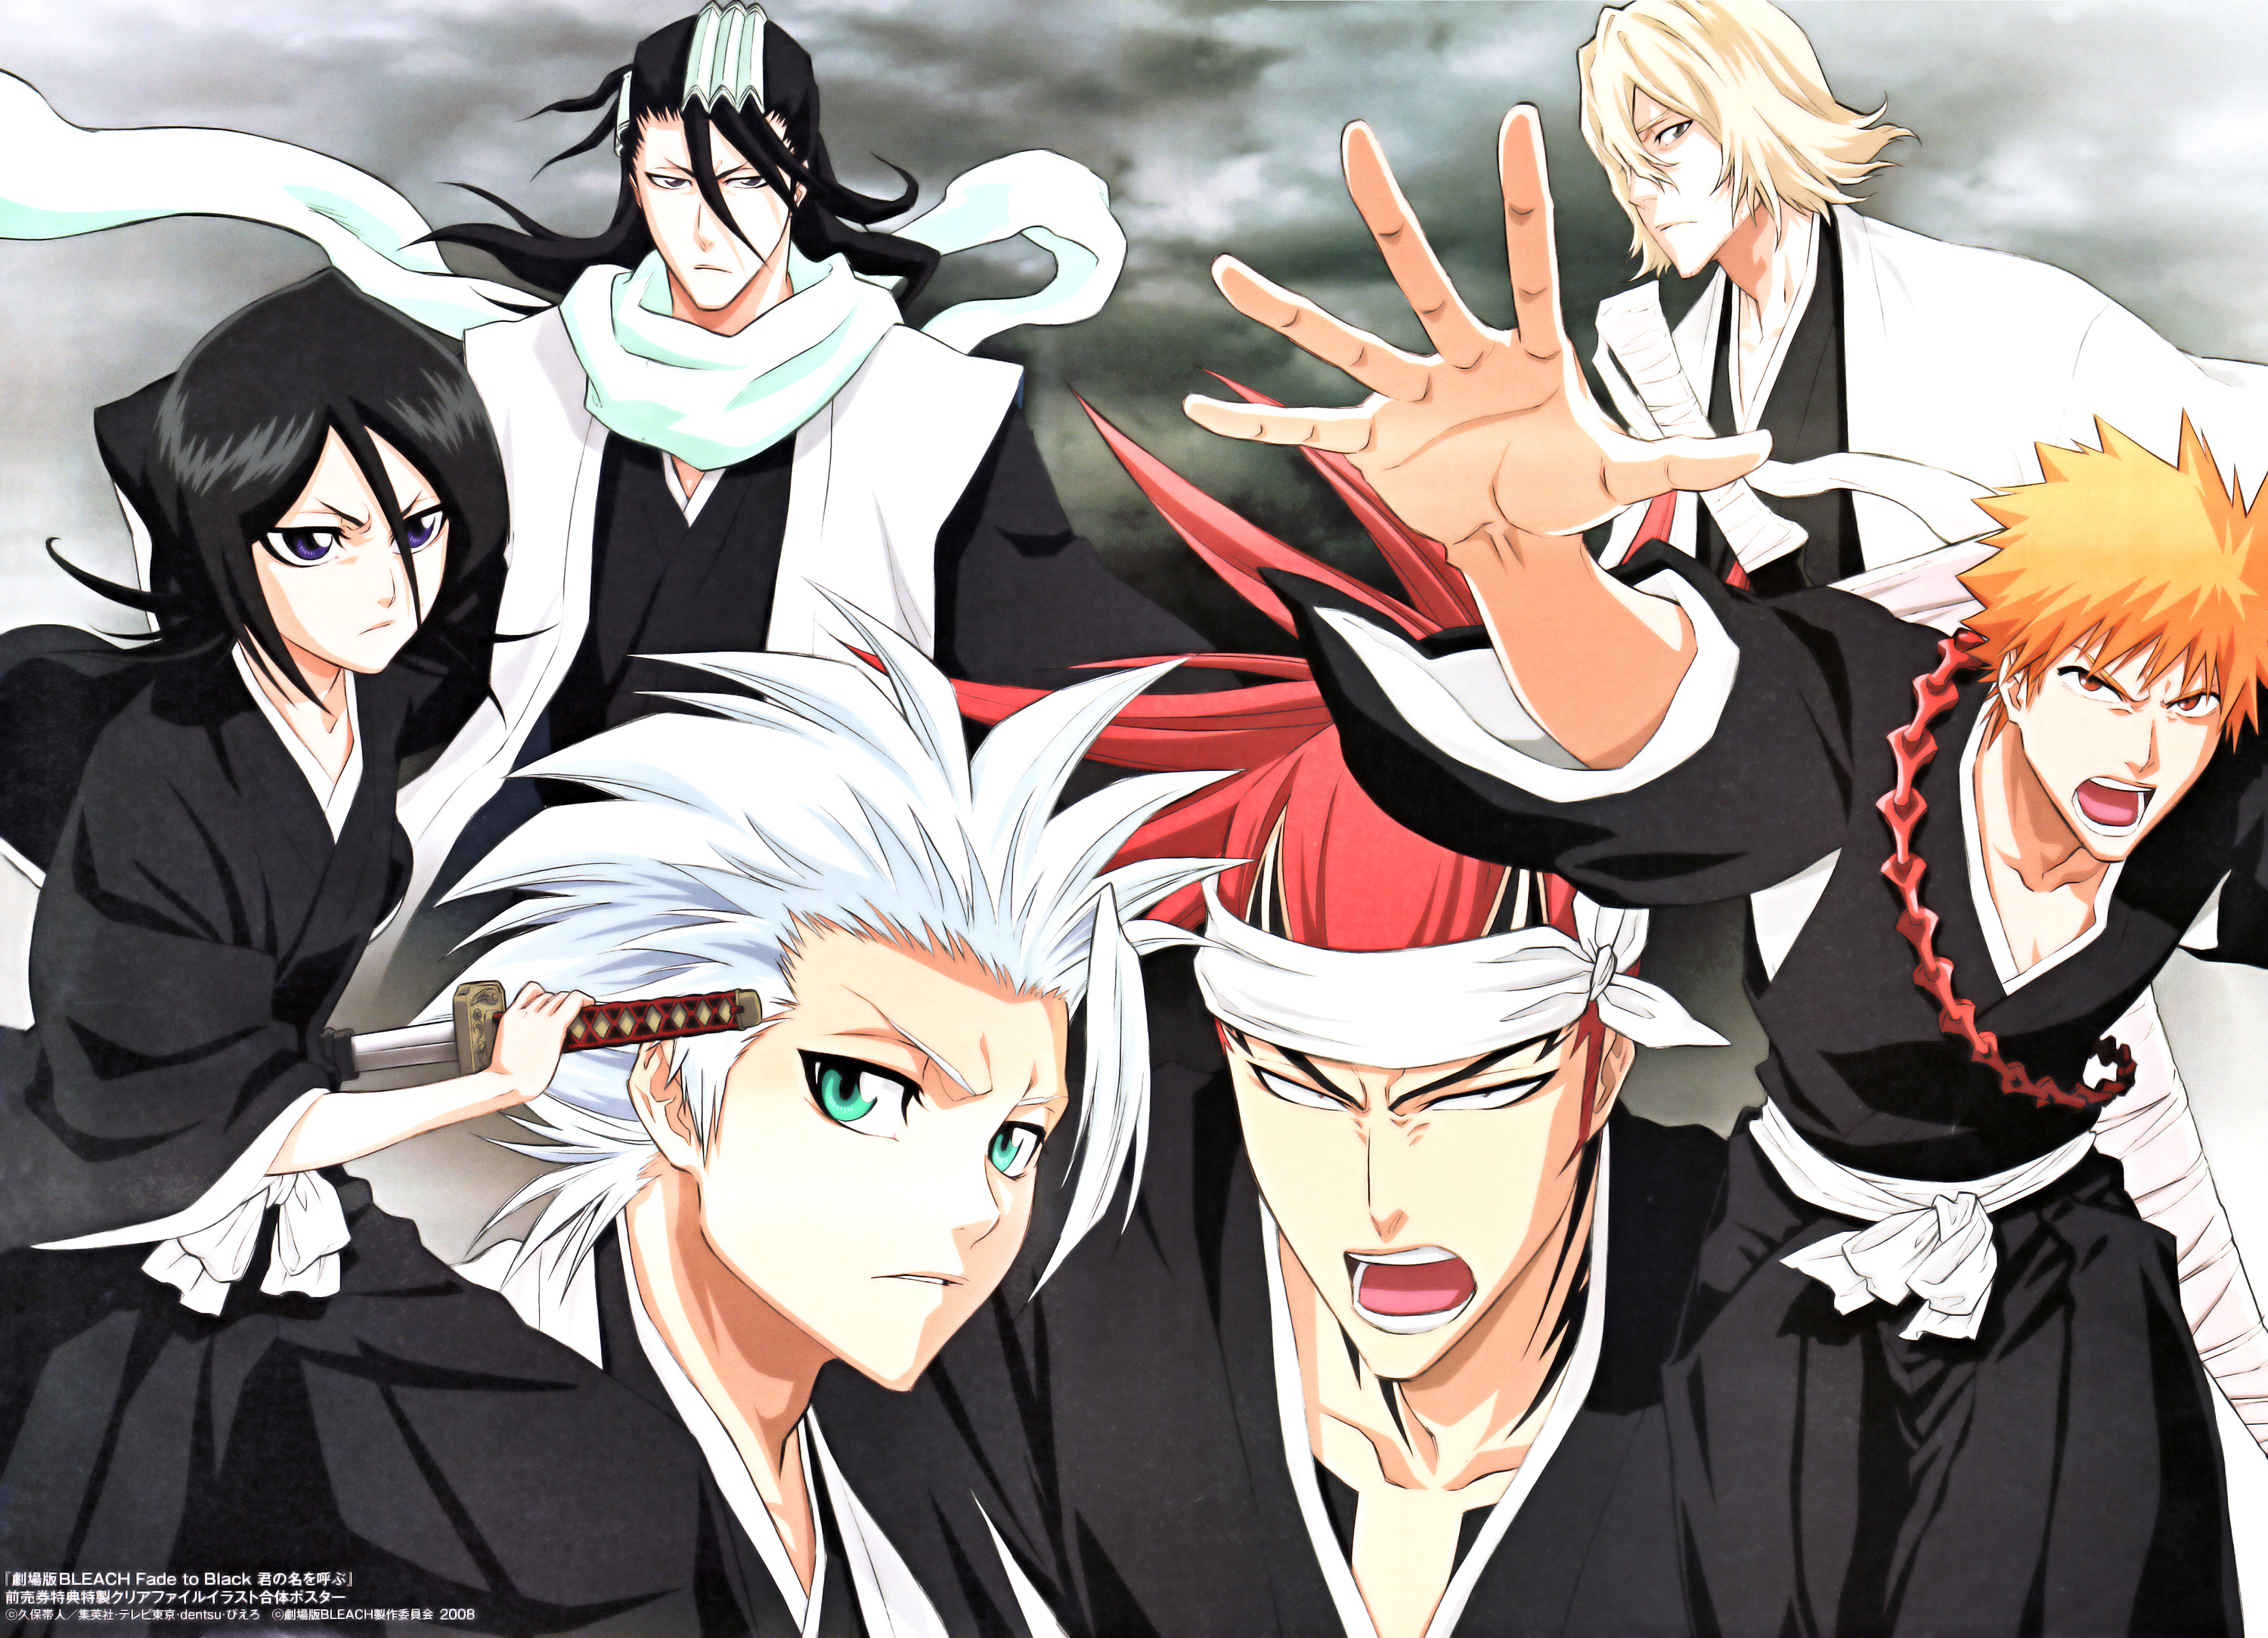 Anime Characters From Bleach : Bleach characters anime photo  fanpop